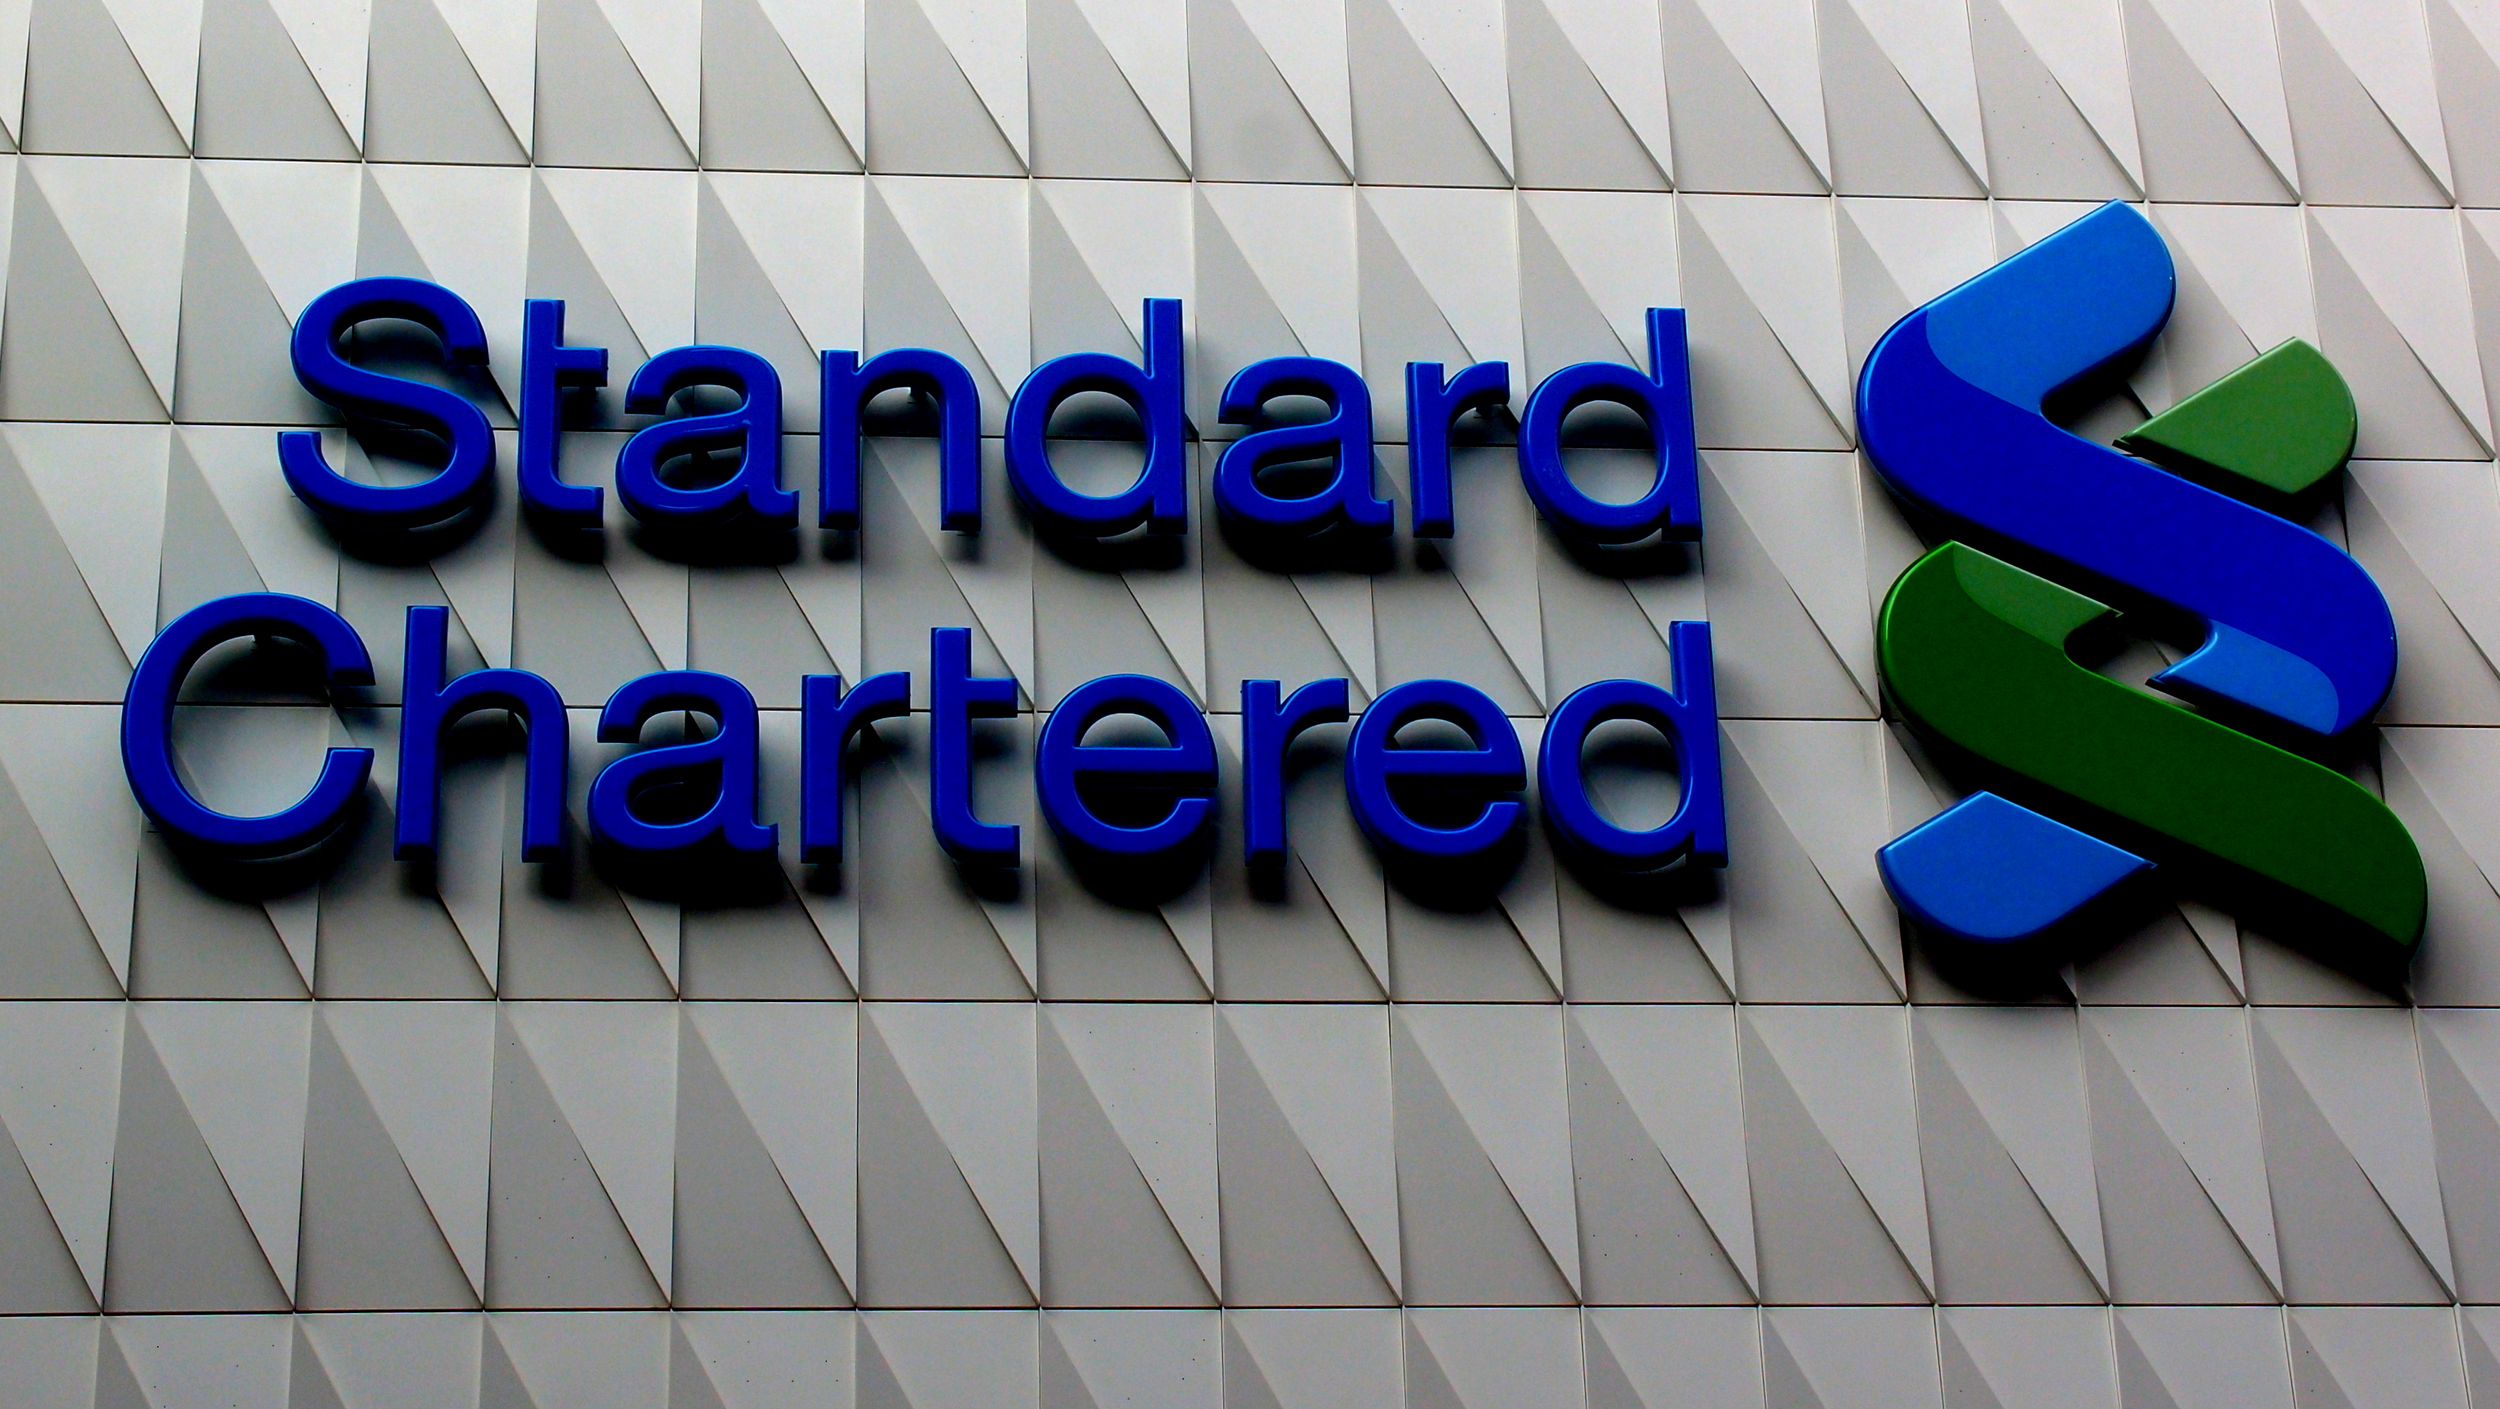 The Standard Chartered Bank in Hong Kong is aggressively opening new branches in Hong Kong, I like their logo and colour scheme.